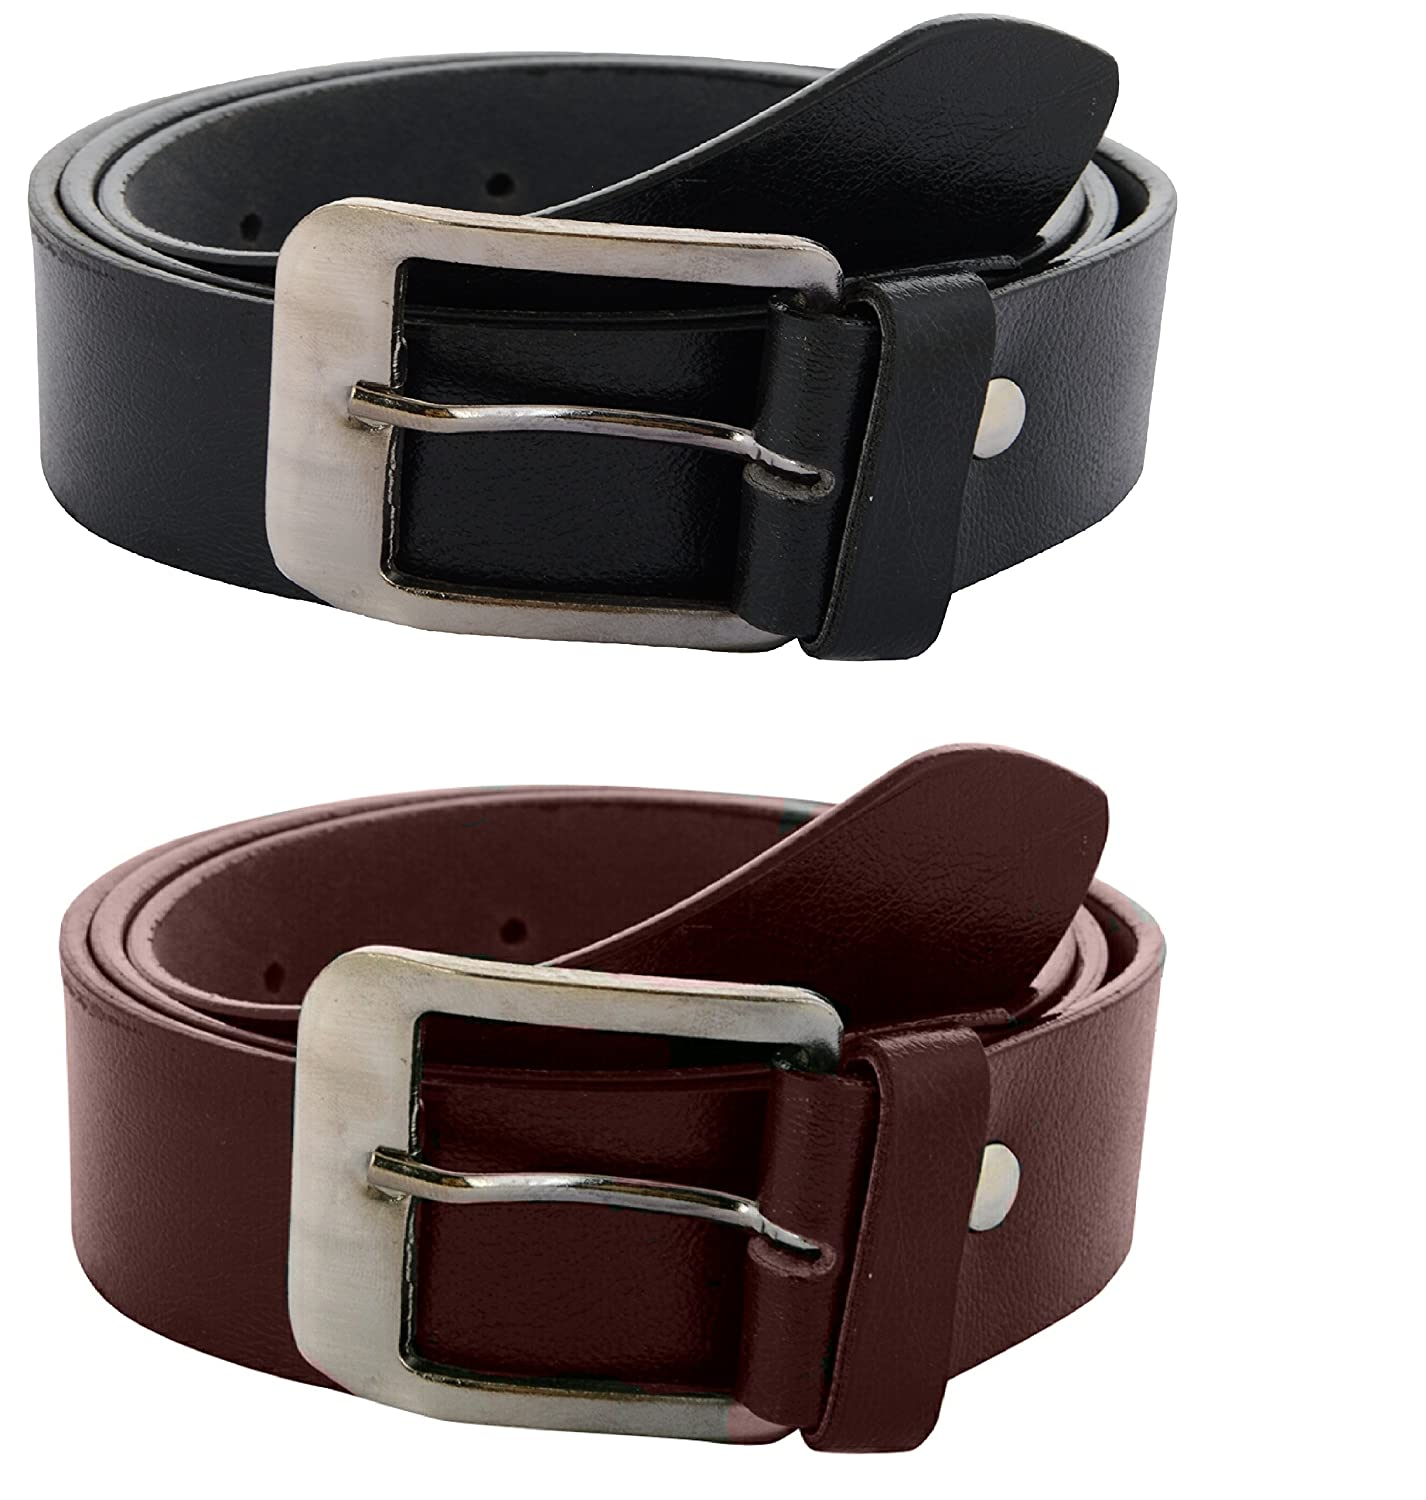 Zacharias Men's Combo of 2 Belts Black & Brown low price